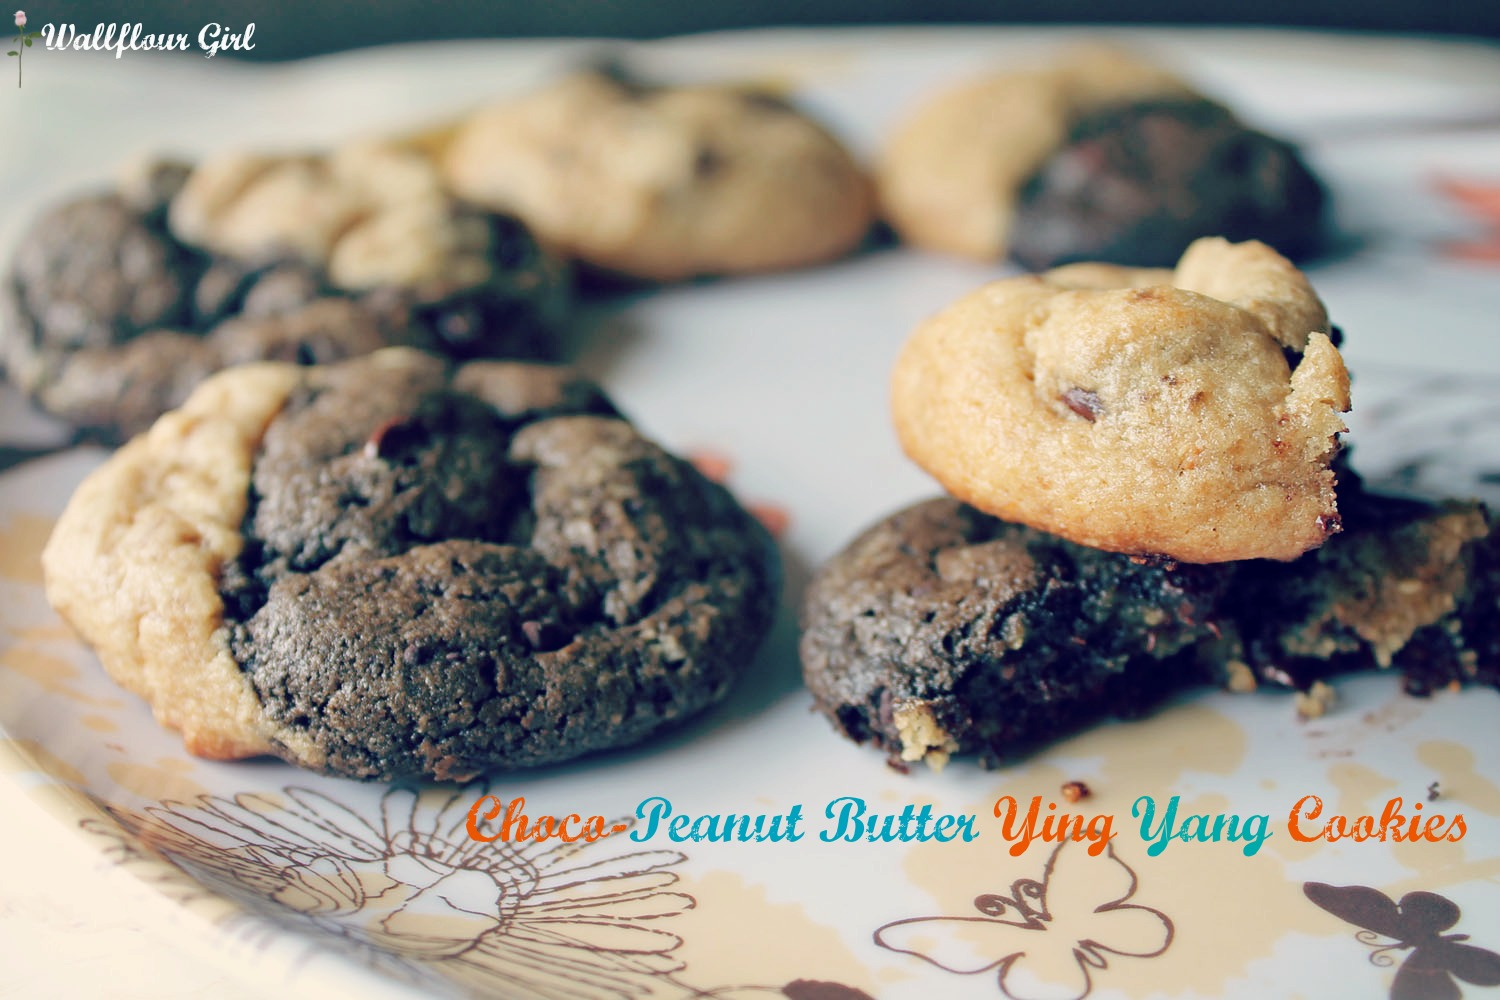 Chocolate Peanut Butter Ying Yang Cookies Banner--041513